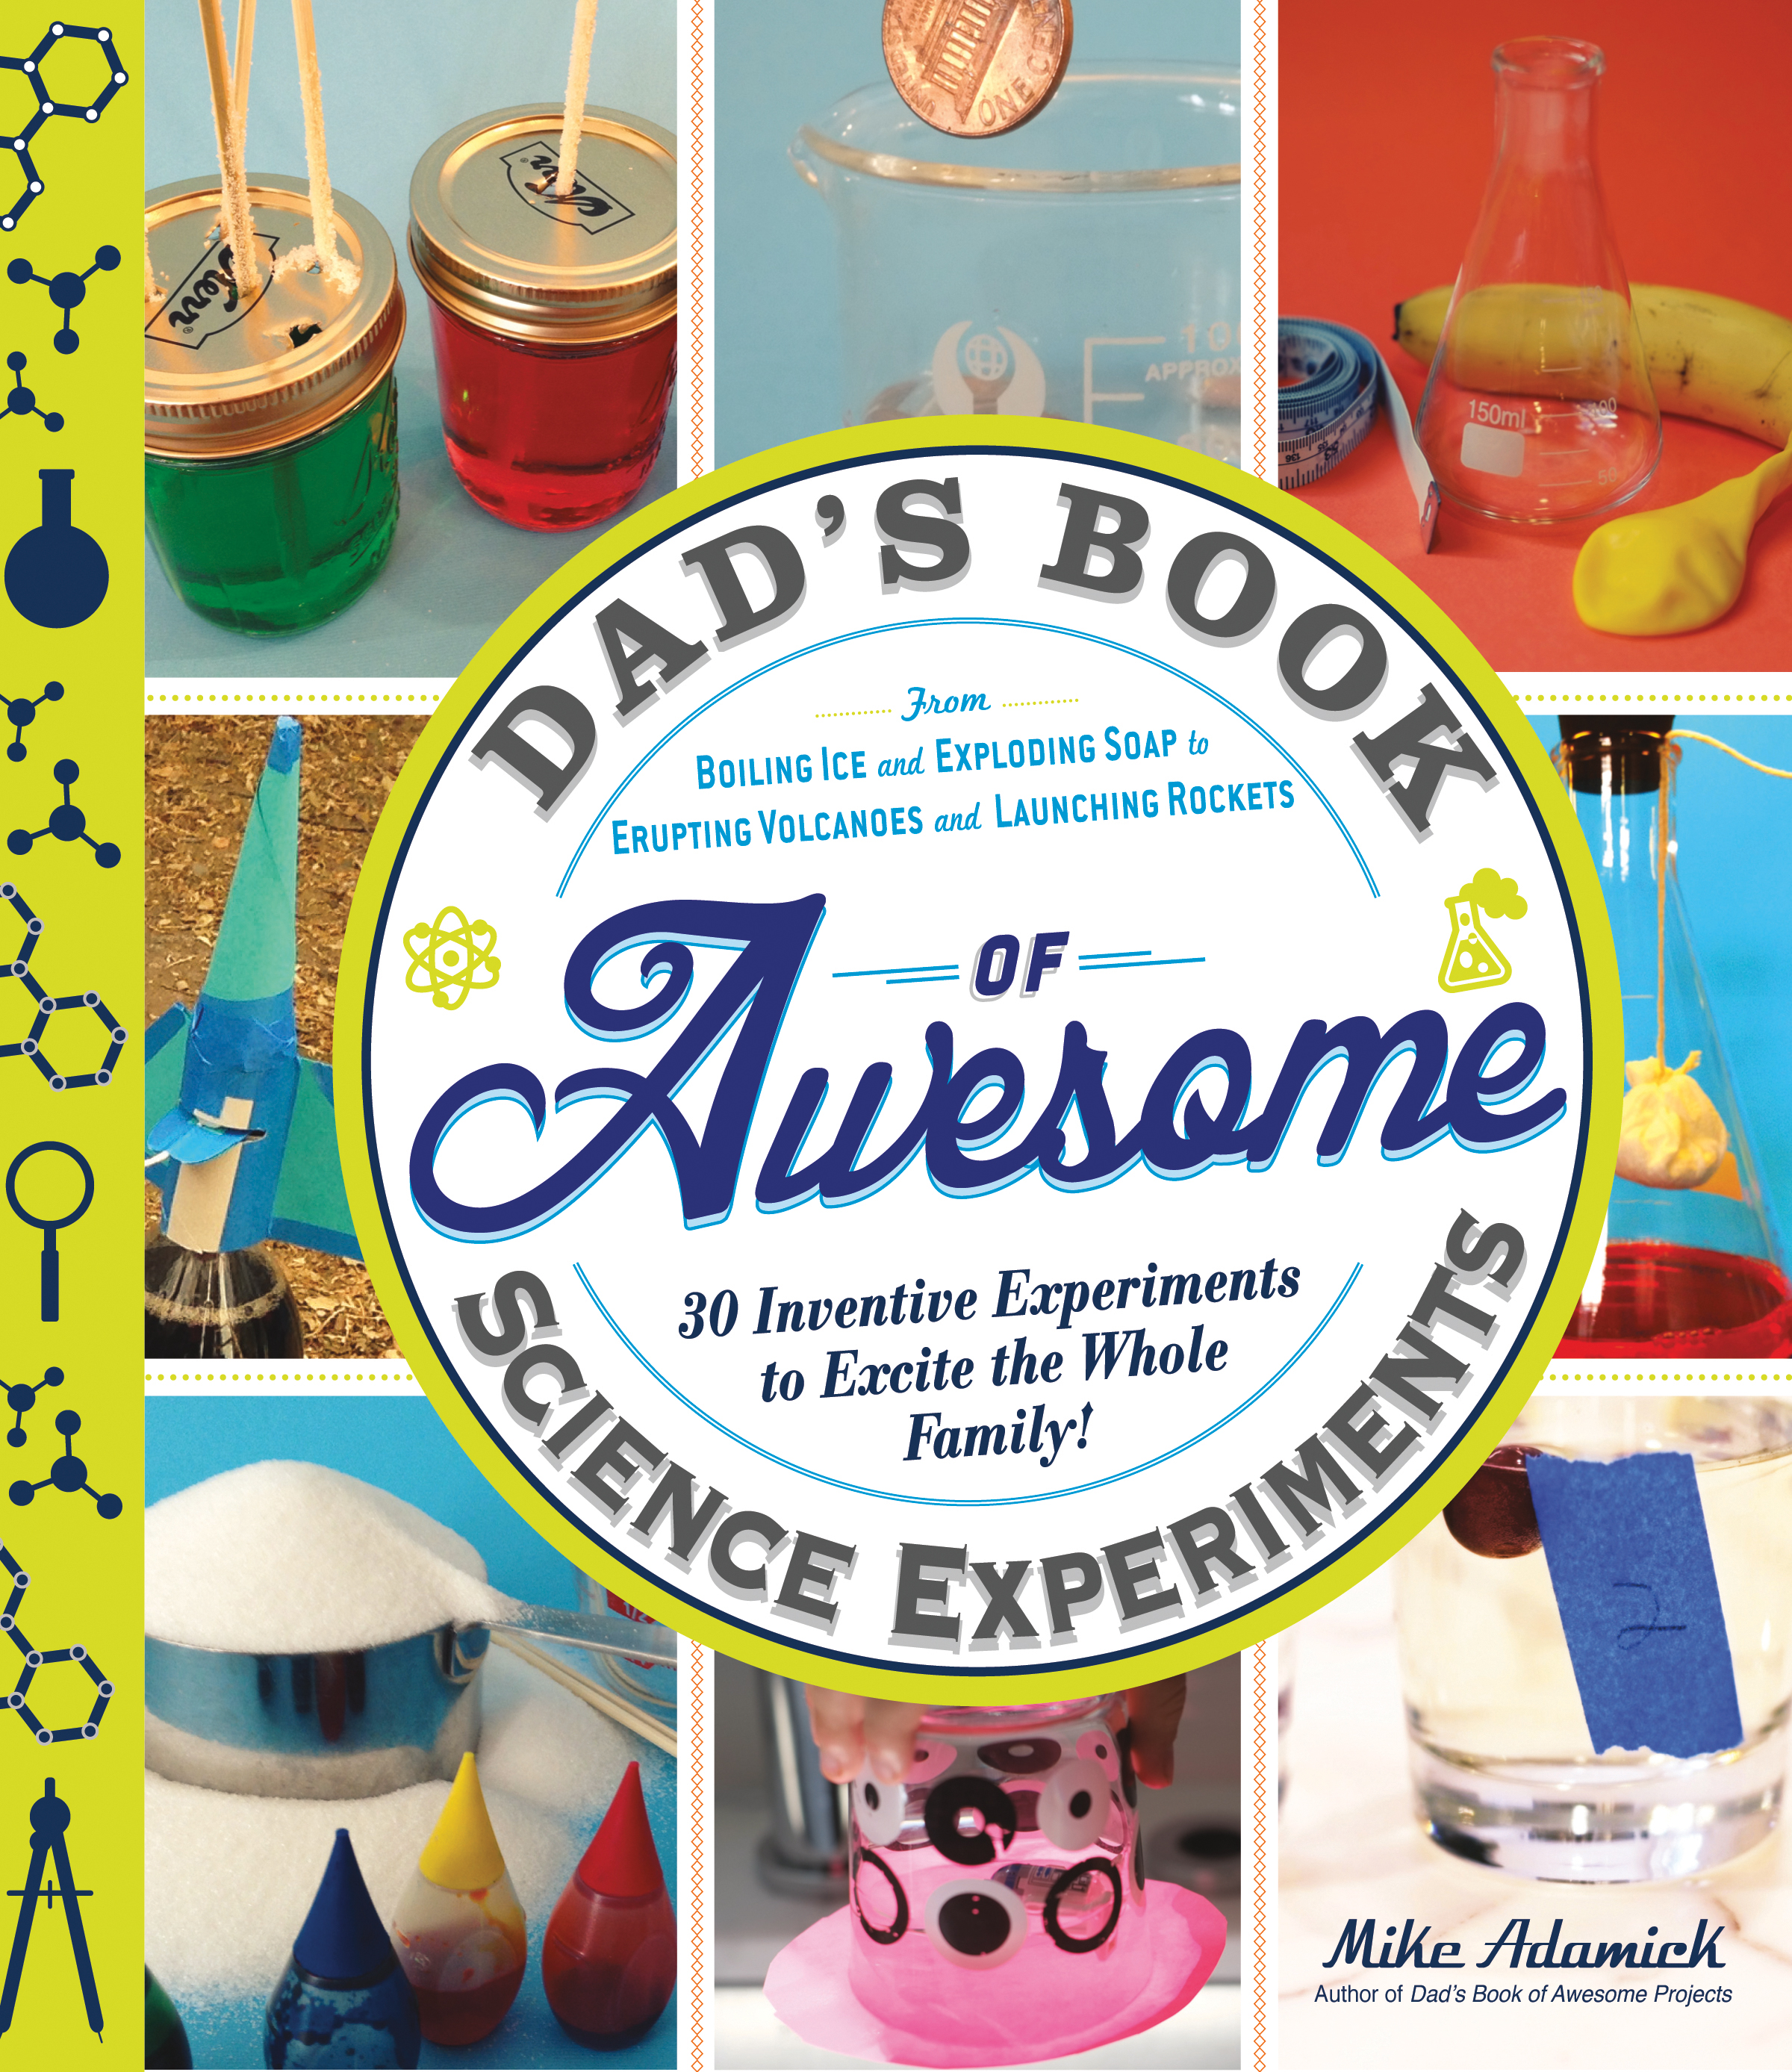 Win, contest, book, science experiments for kids, dad blog, daddy blogger, socialdad, socialdad.ca, yvr blogger, canada dads,